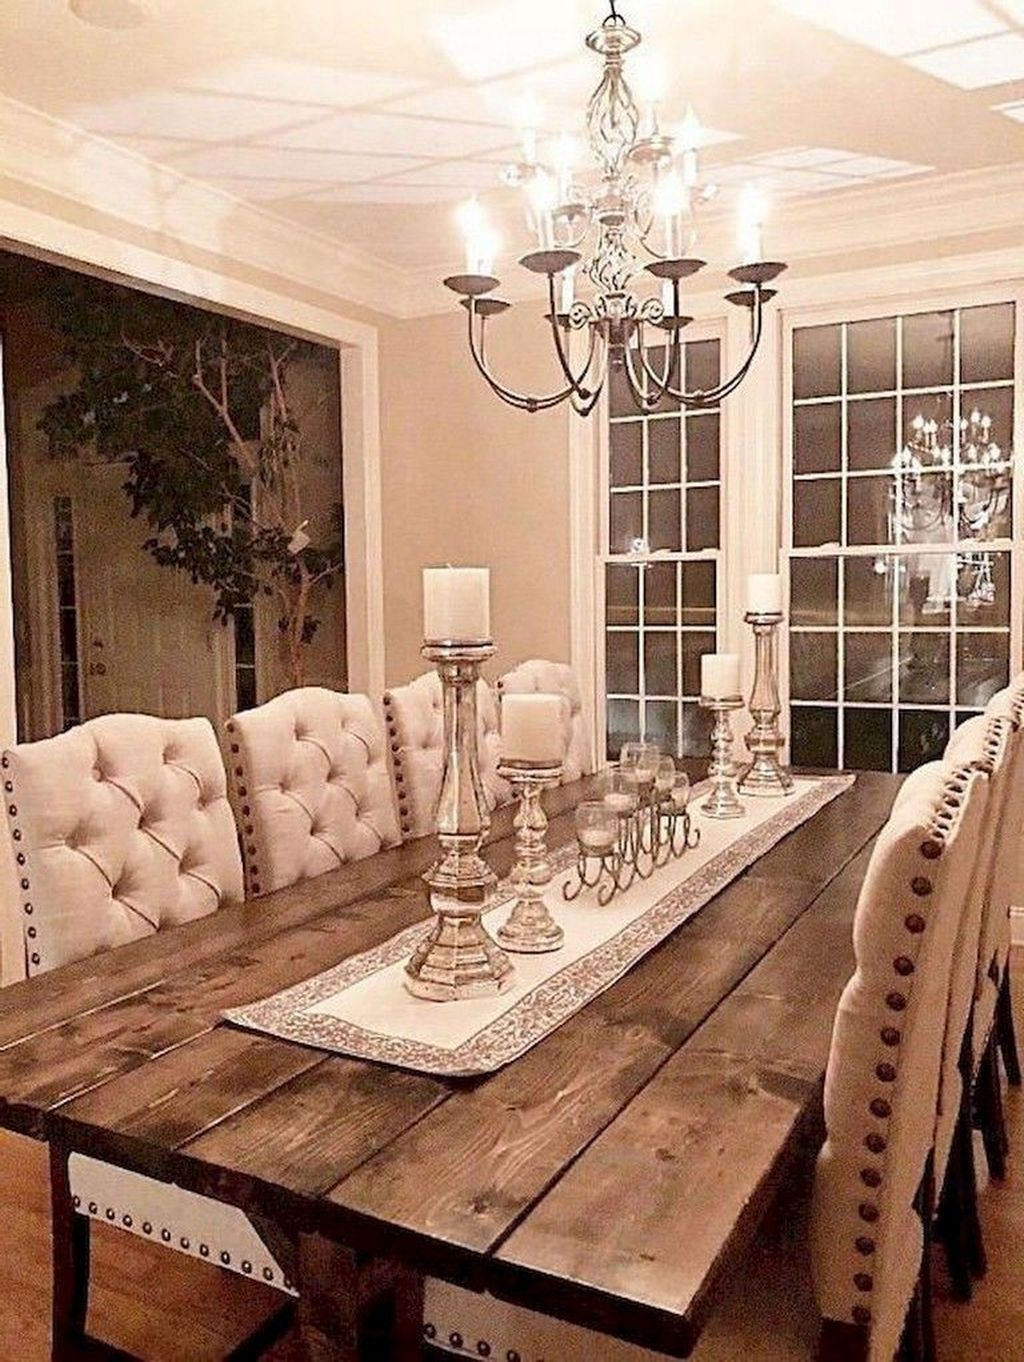 35 Cool Farmhouse Dining Room Design Ideas images